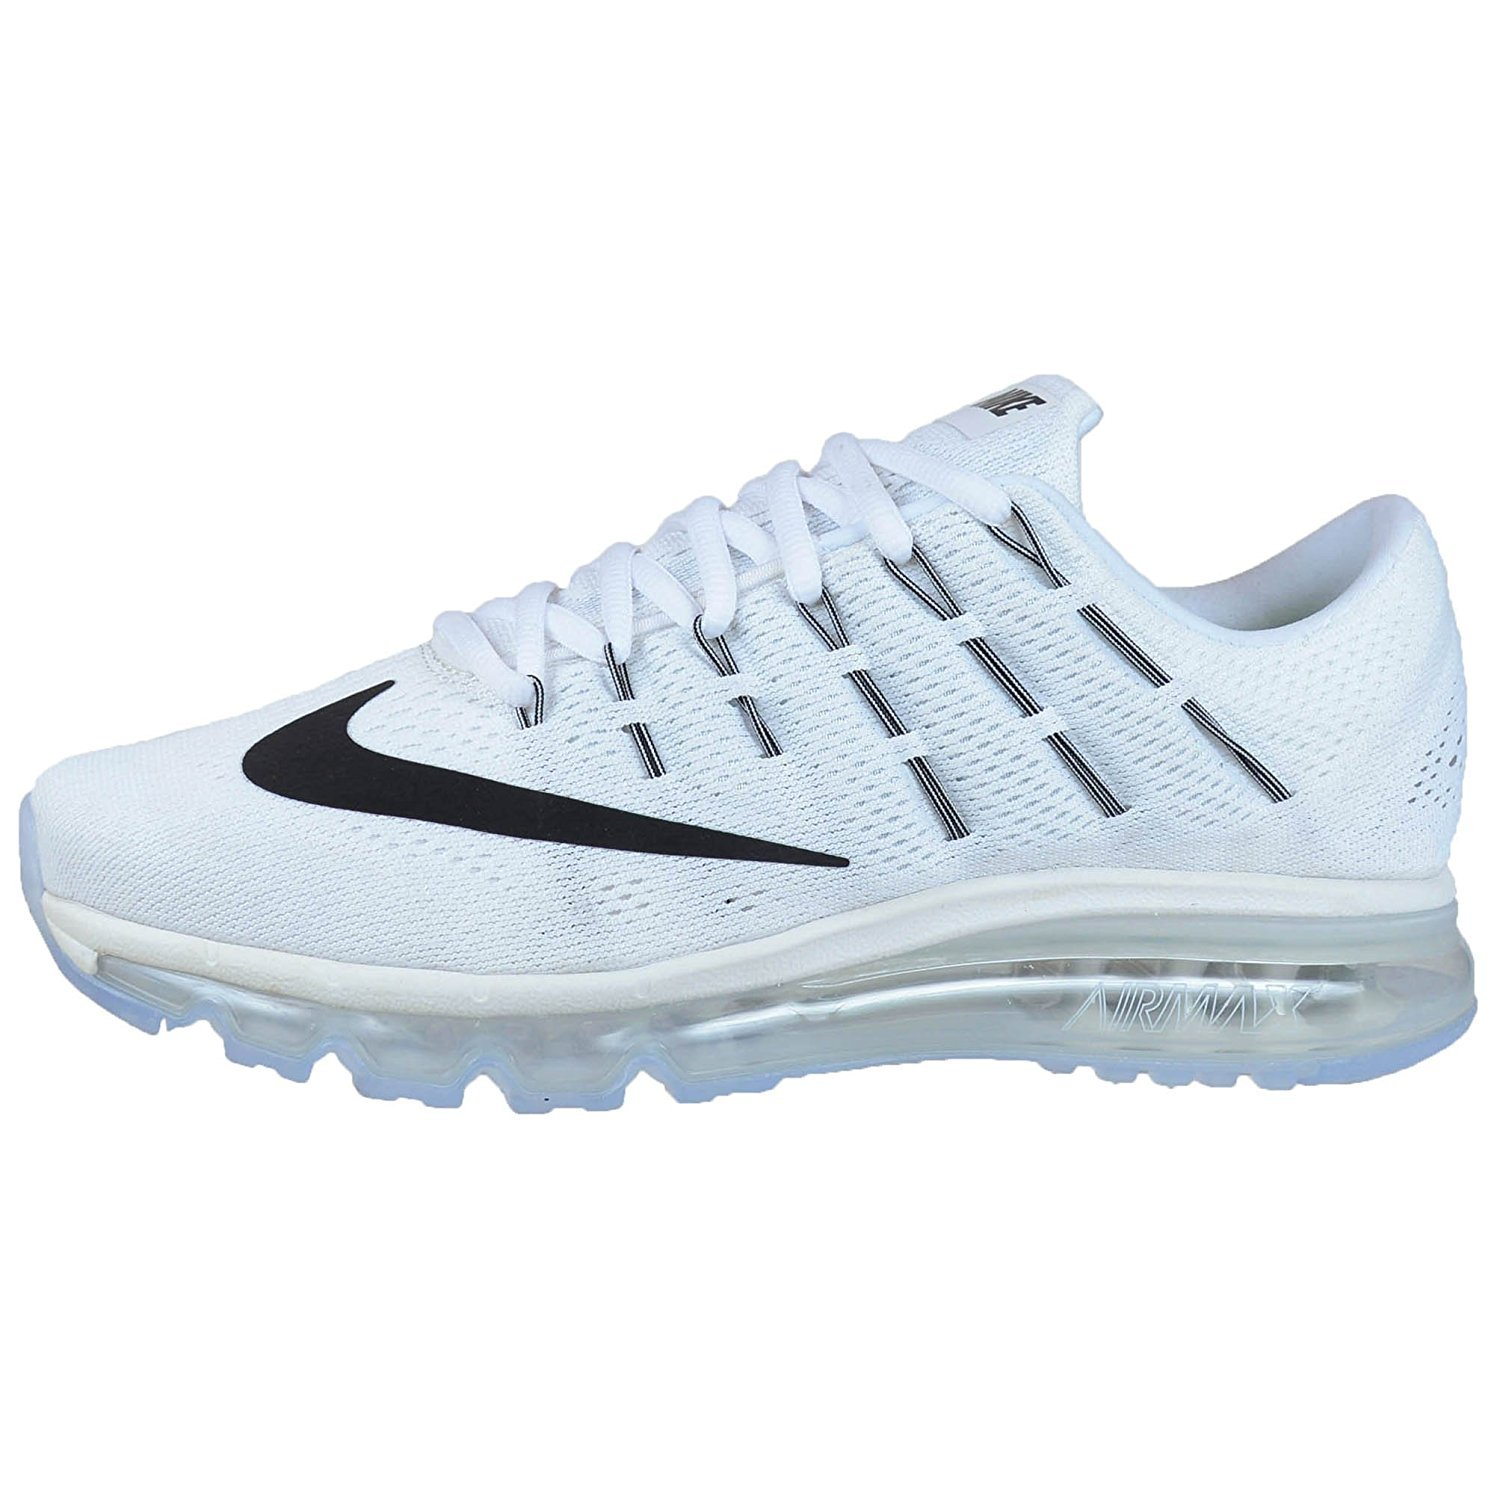 promo code 00a67 ba429 Amazon.com   Nike Womens Air Max 2016 Summit White White Black Mesh Running  Shoes 8.5 M US   Road Running